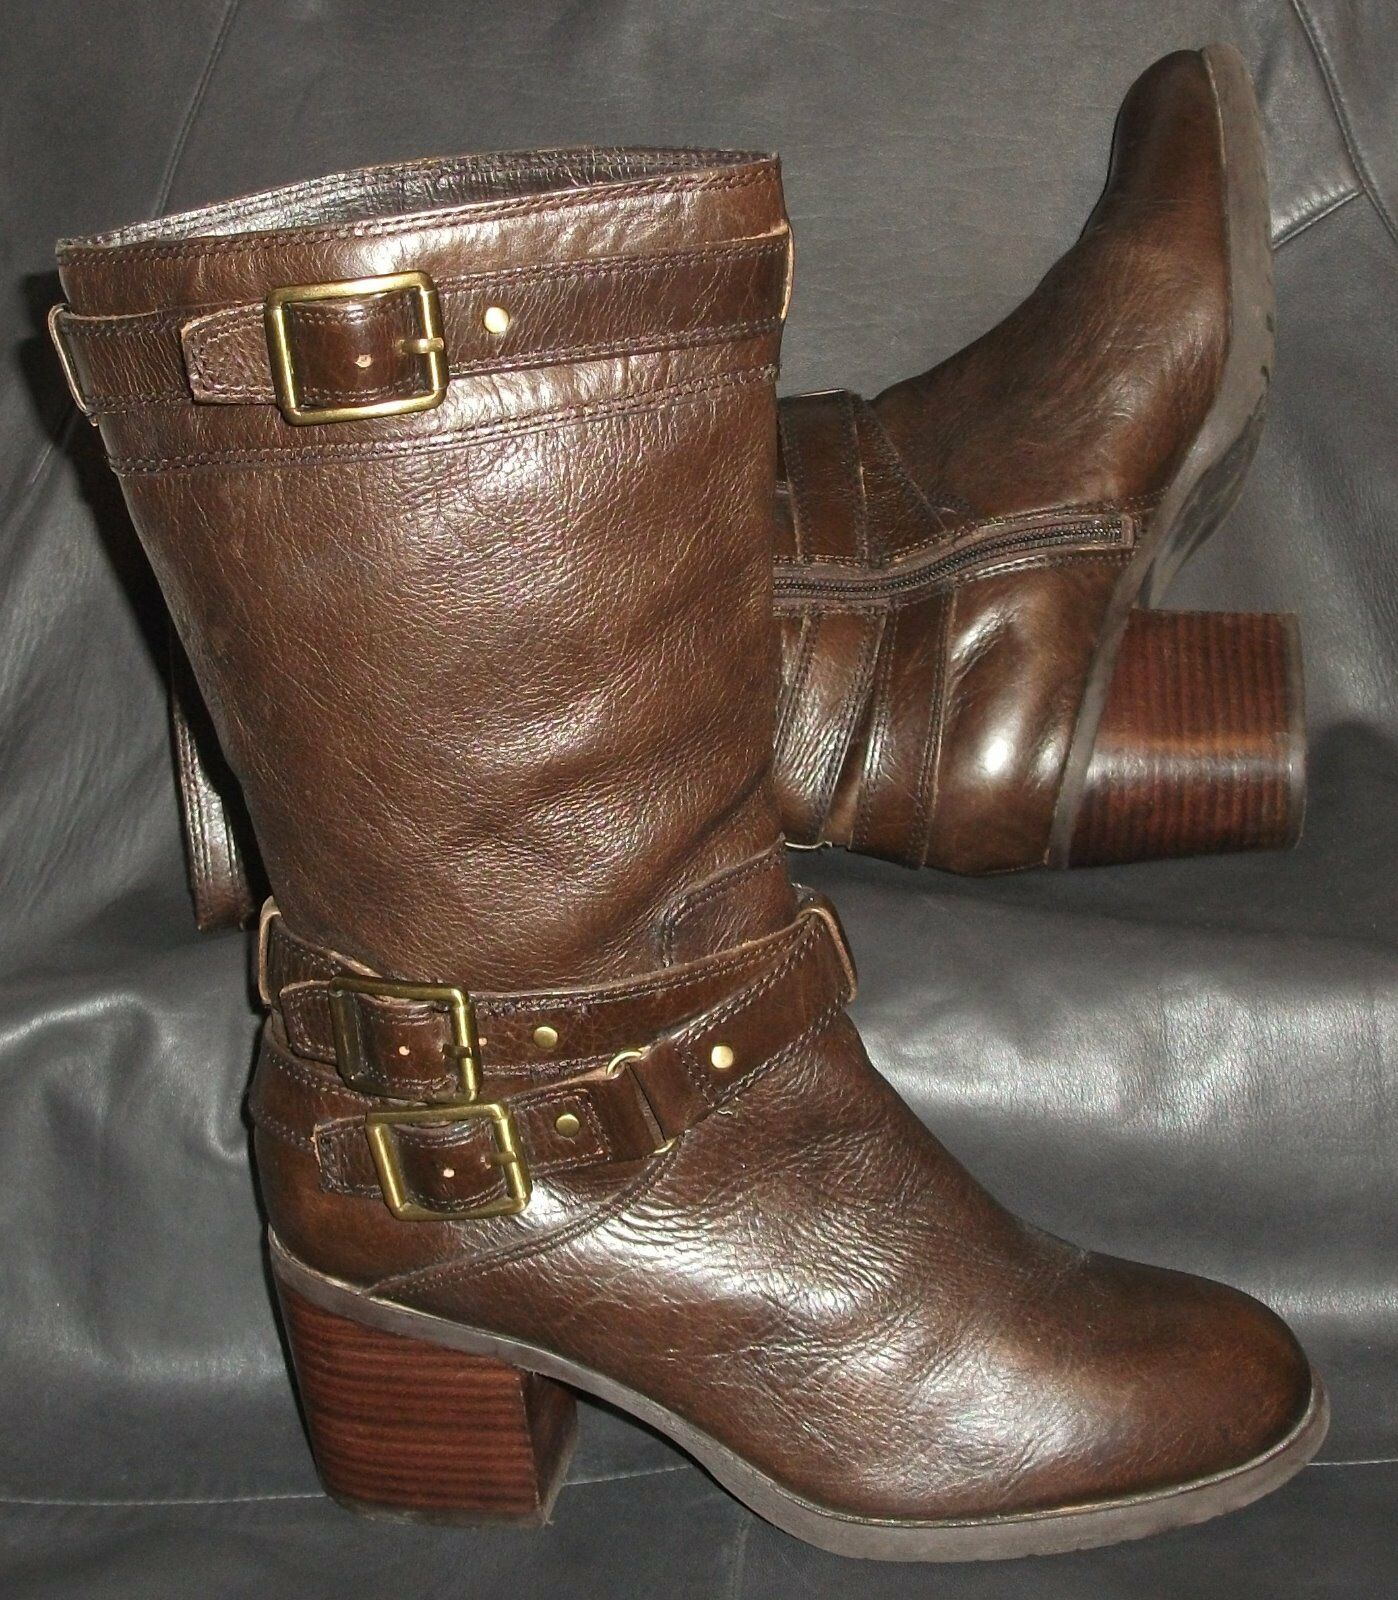 Jessica Simpson womens Brown pebbled lea pull-on zip up mid-calf Boot 81/2B